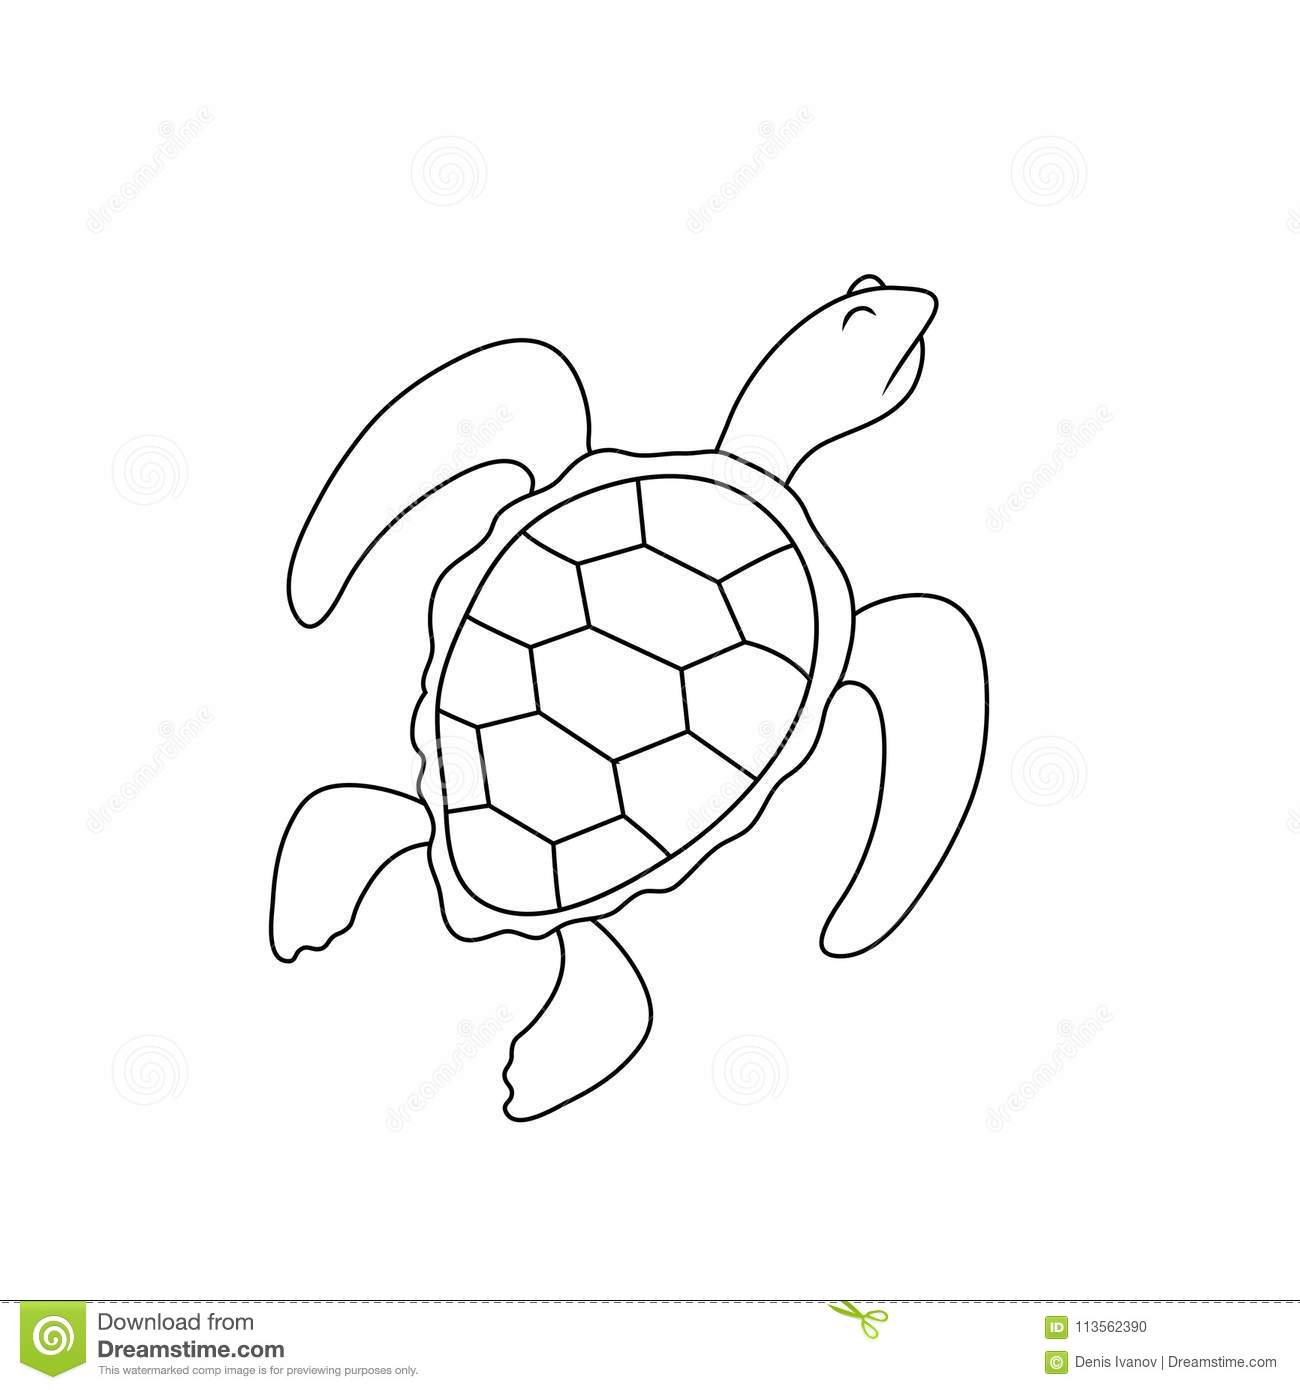 Dessin simple d 39 une tortue avec une expression hautaine - Tortue en dessin ...